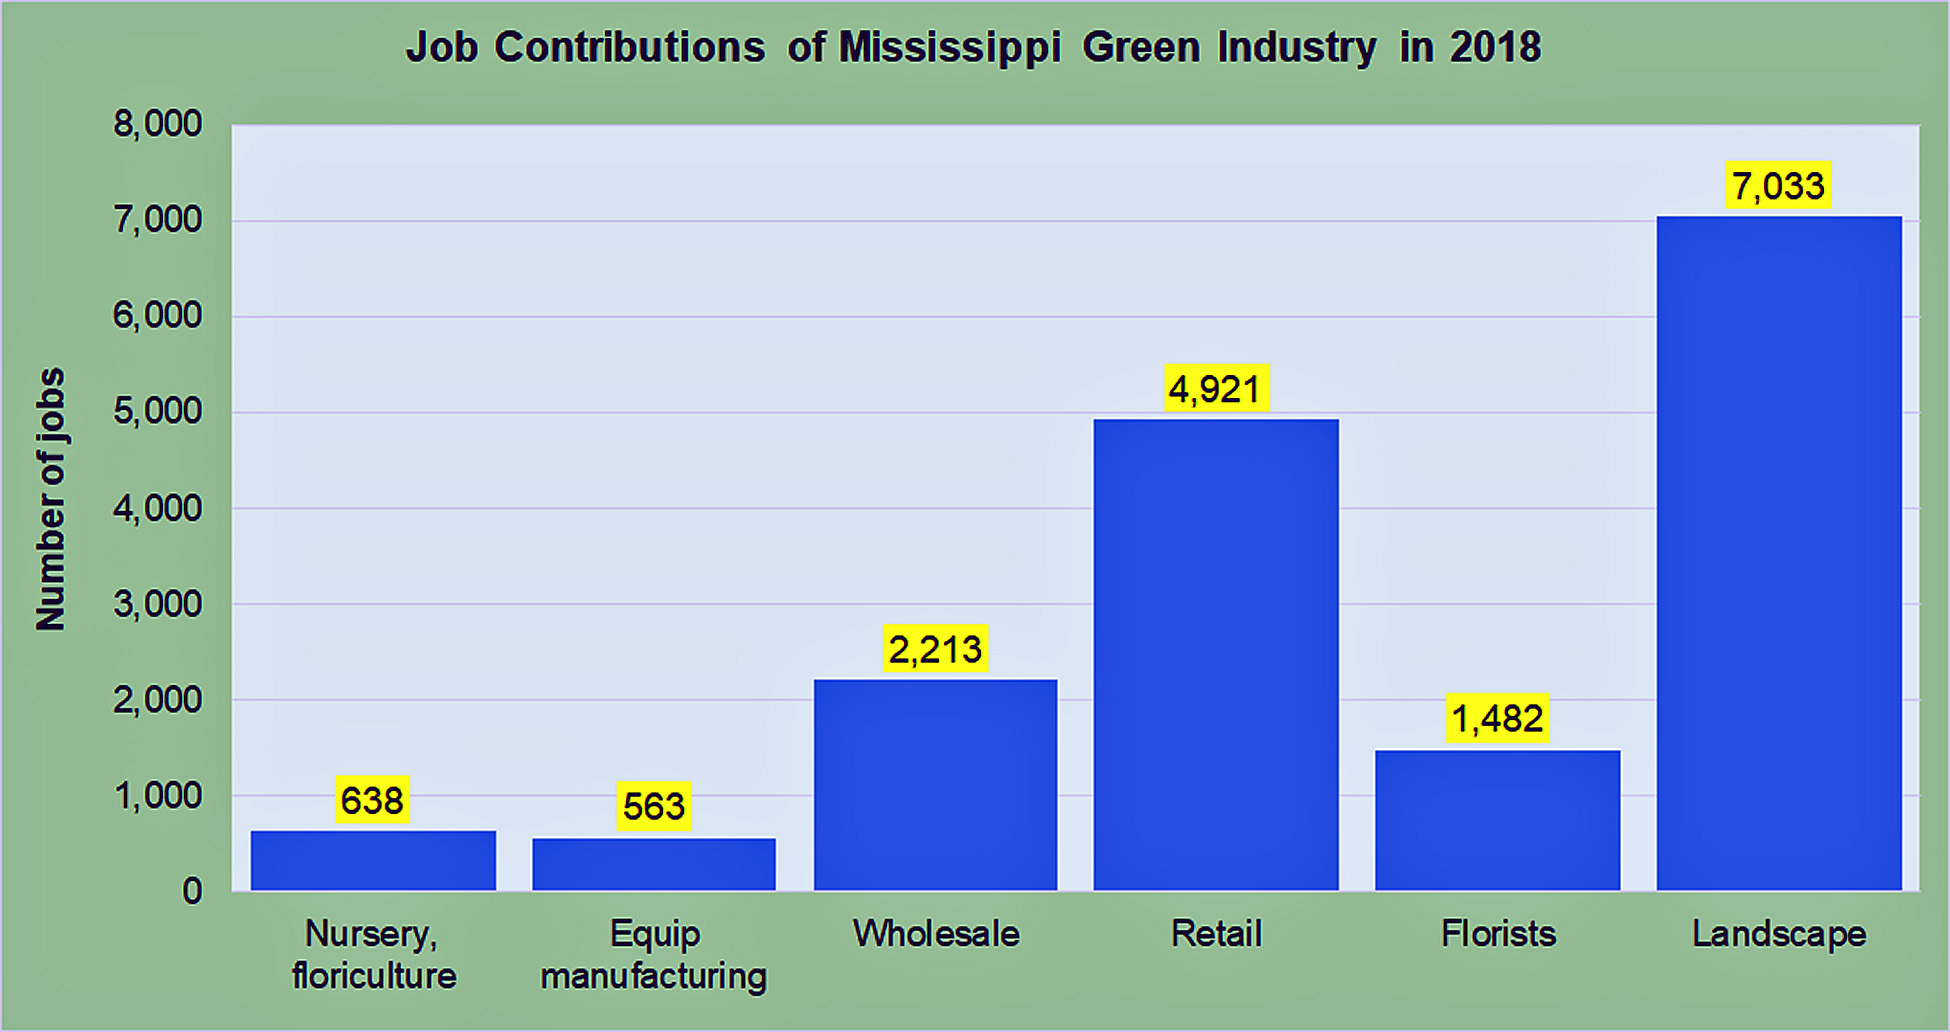 Job Contributions of Mississippi Green Industry in 2018